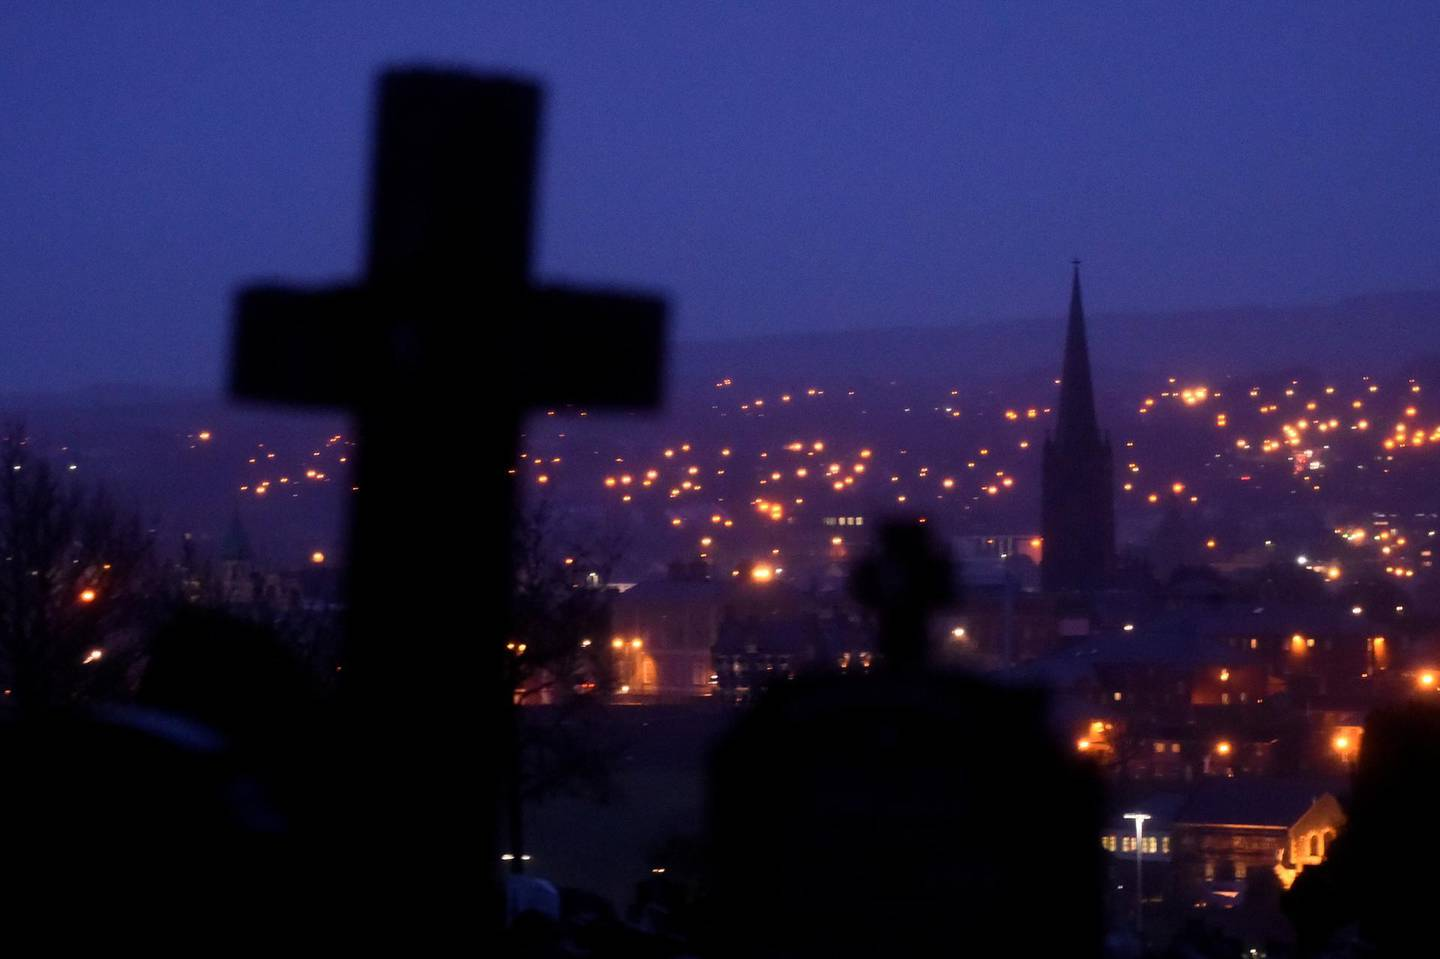 FILE PHOTO: A general view shows night falling on the city of Londonderry, Northern Ireland, January 21, 2019. REUTERS/Clodagh Kilcoyne/File Photo